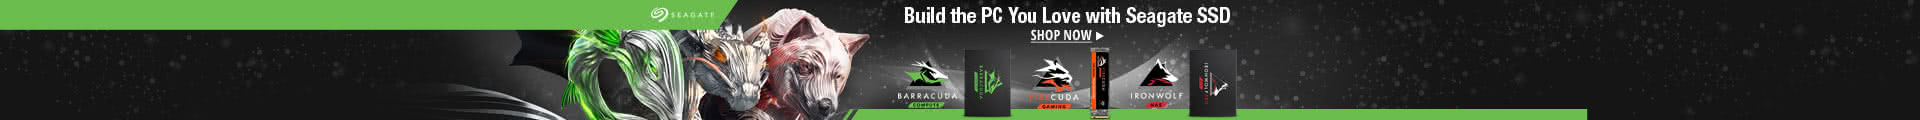 Build the PC You Love with Seagate SSD